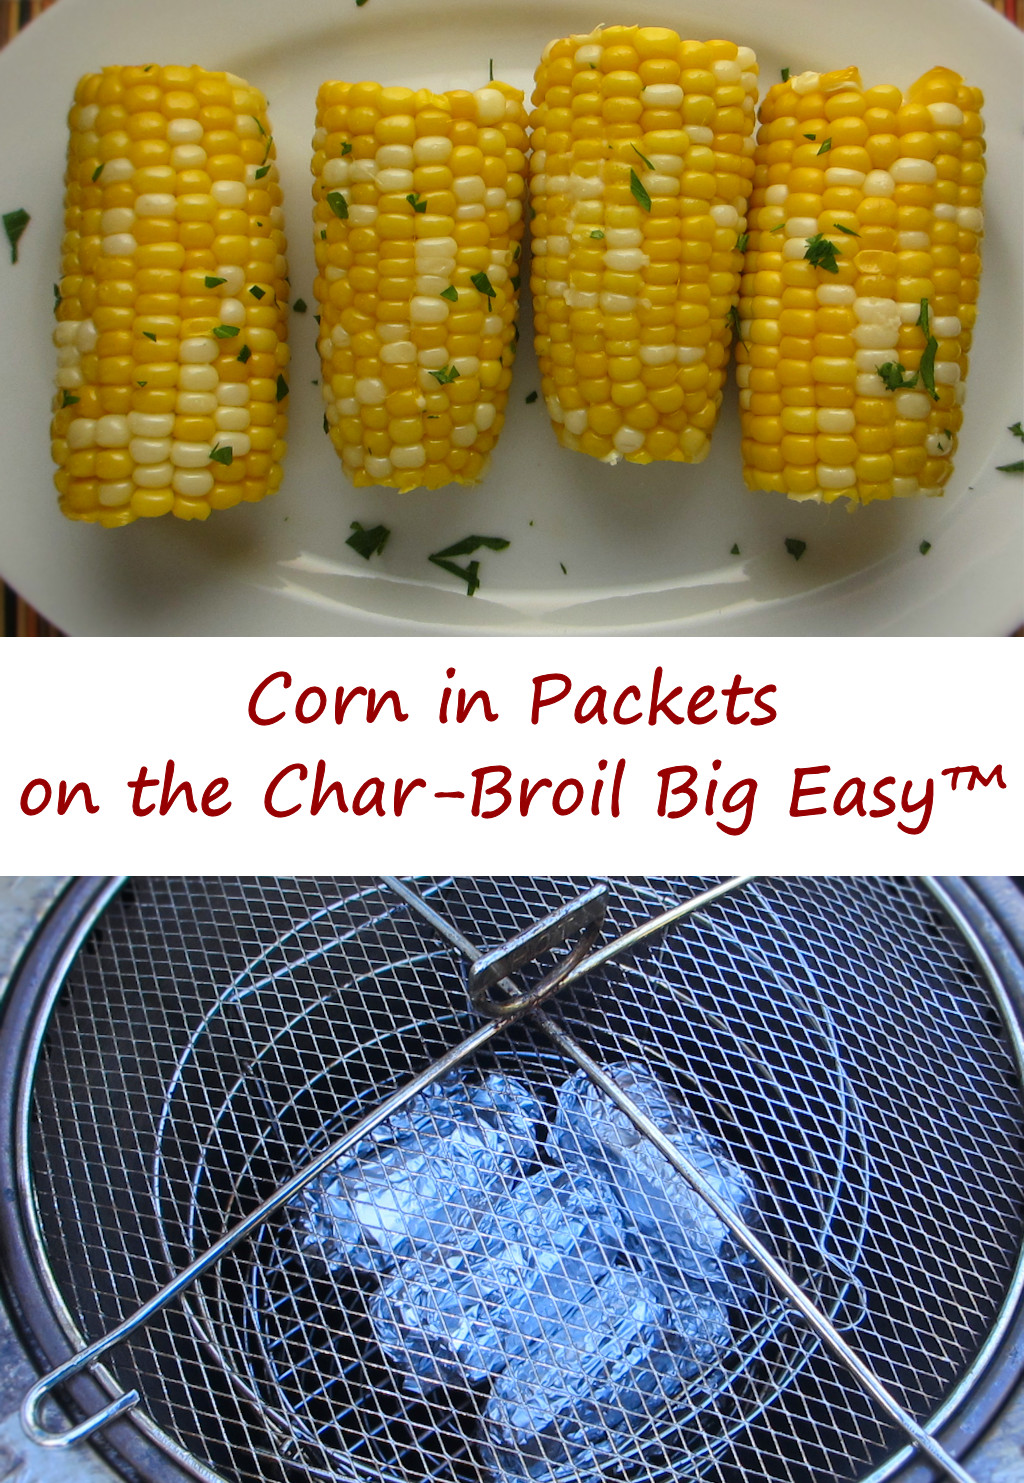 Corn in Packets on the Char-Broil Big Easy